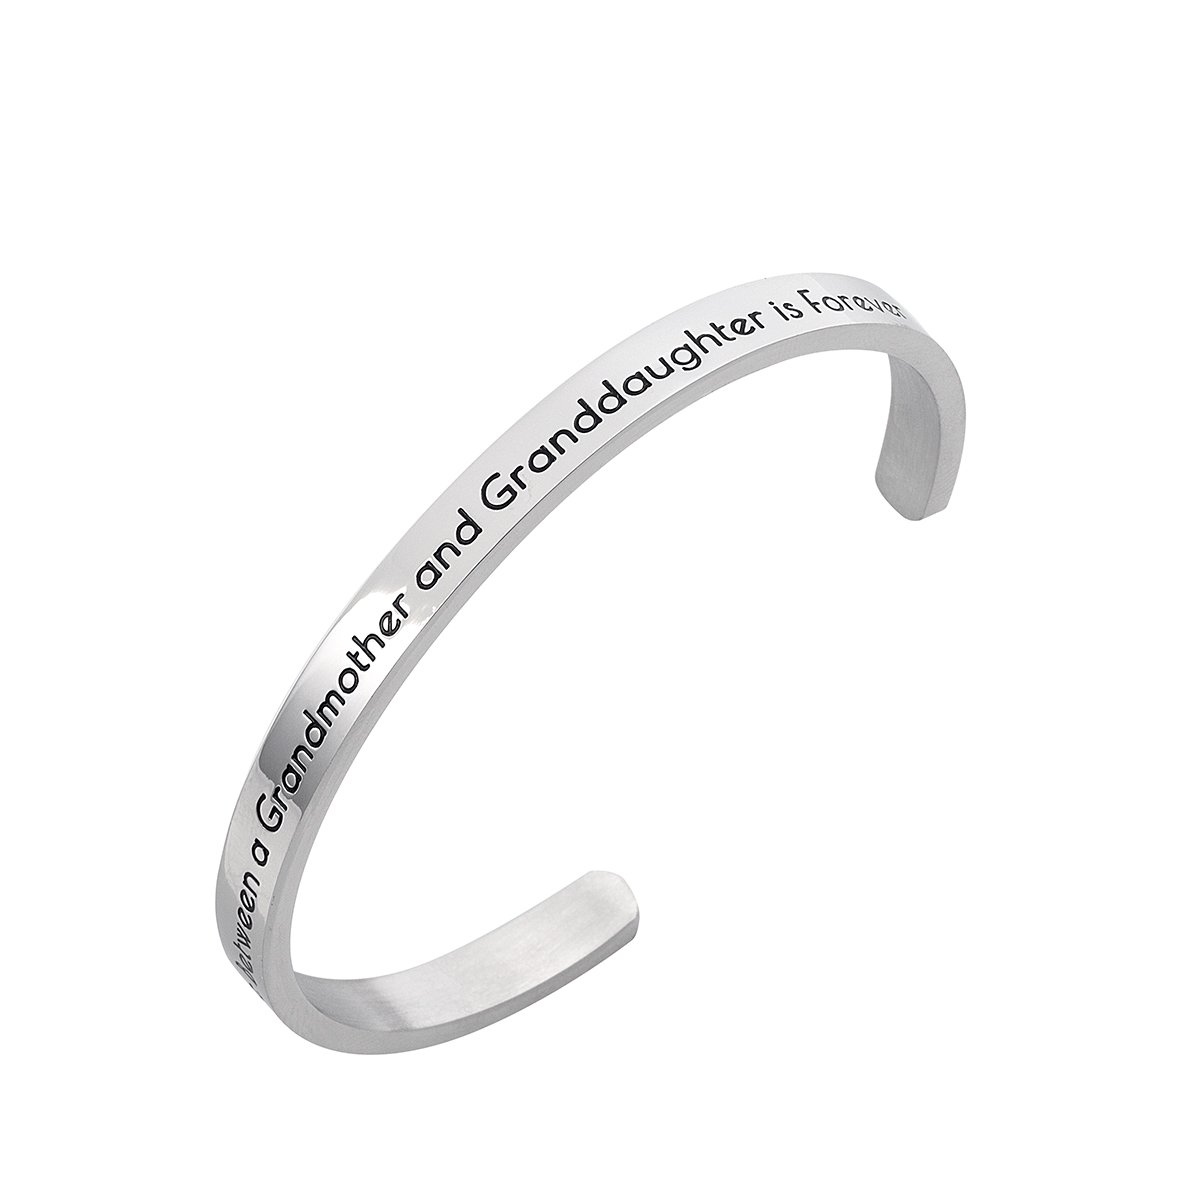 Stpower Grandmother Granddaughter Gift ''The love between a grandmother and a granddaughter is forever'' Message Cuff Bracelet